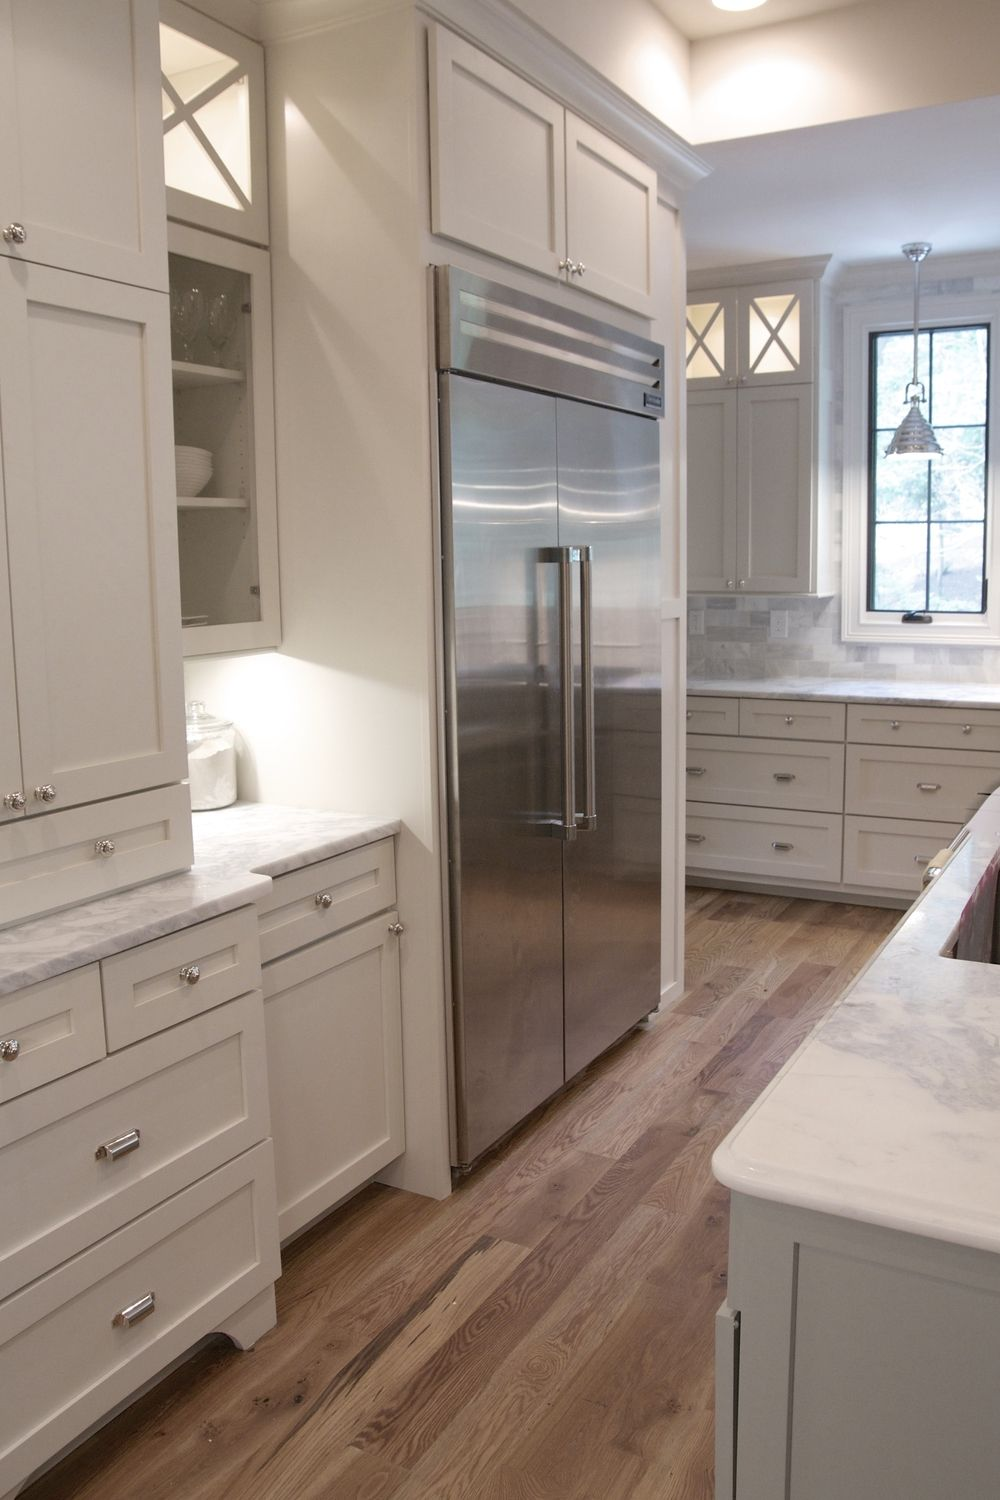 Tasha B. Davis Interiors, Custom Kitchen, White Shaker Cabinets, Built In Refrigerator, White Marble Countertops, White Dove Paint, Vaulted Ceiling, Under Cabinet Lighting, Polished Nickel Hardware, Cup Pulls, Bin Pulls, White Oak Flooring, Weathered Oak Floors, Marble Subway Tile, Marble Kitchen Backsplash, X detail #whiteshakercabinets